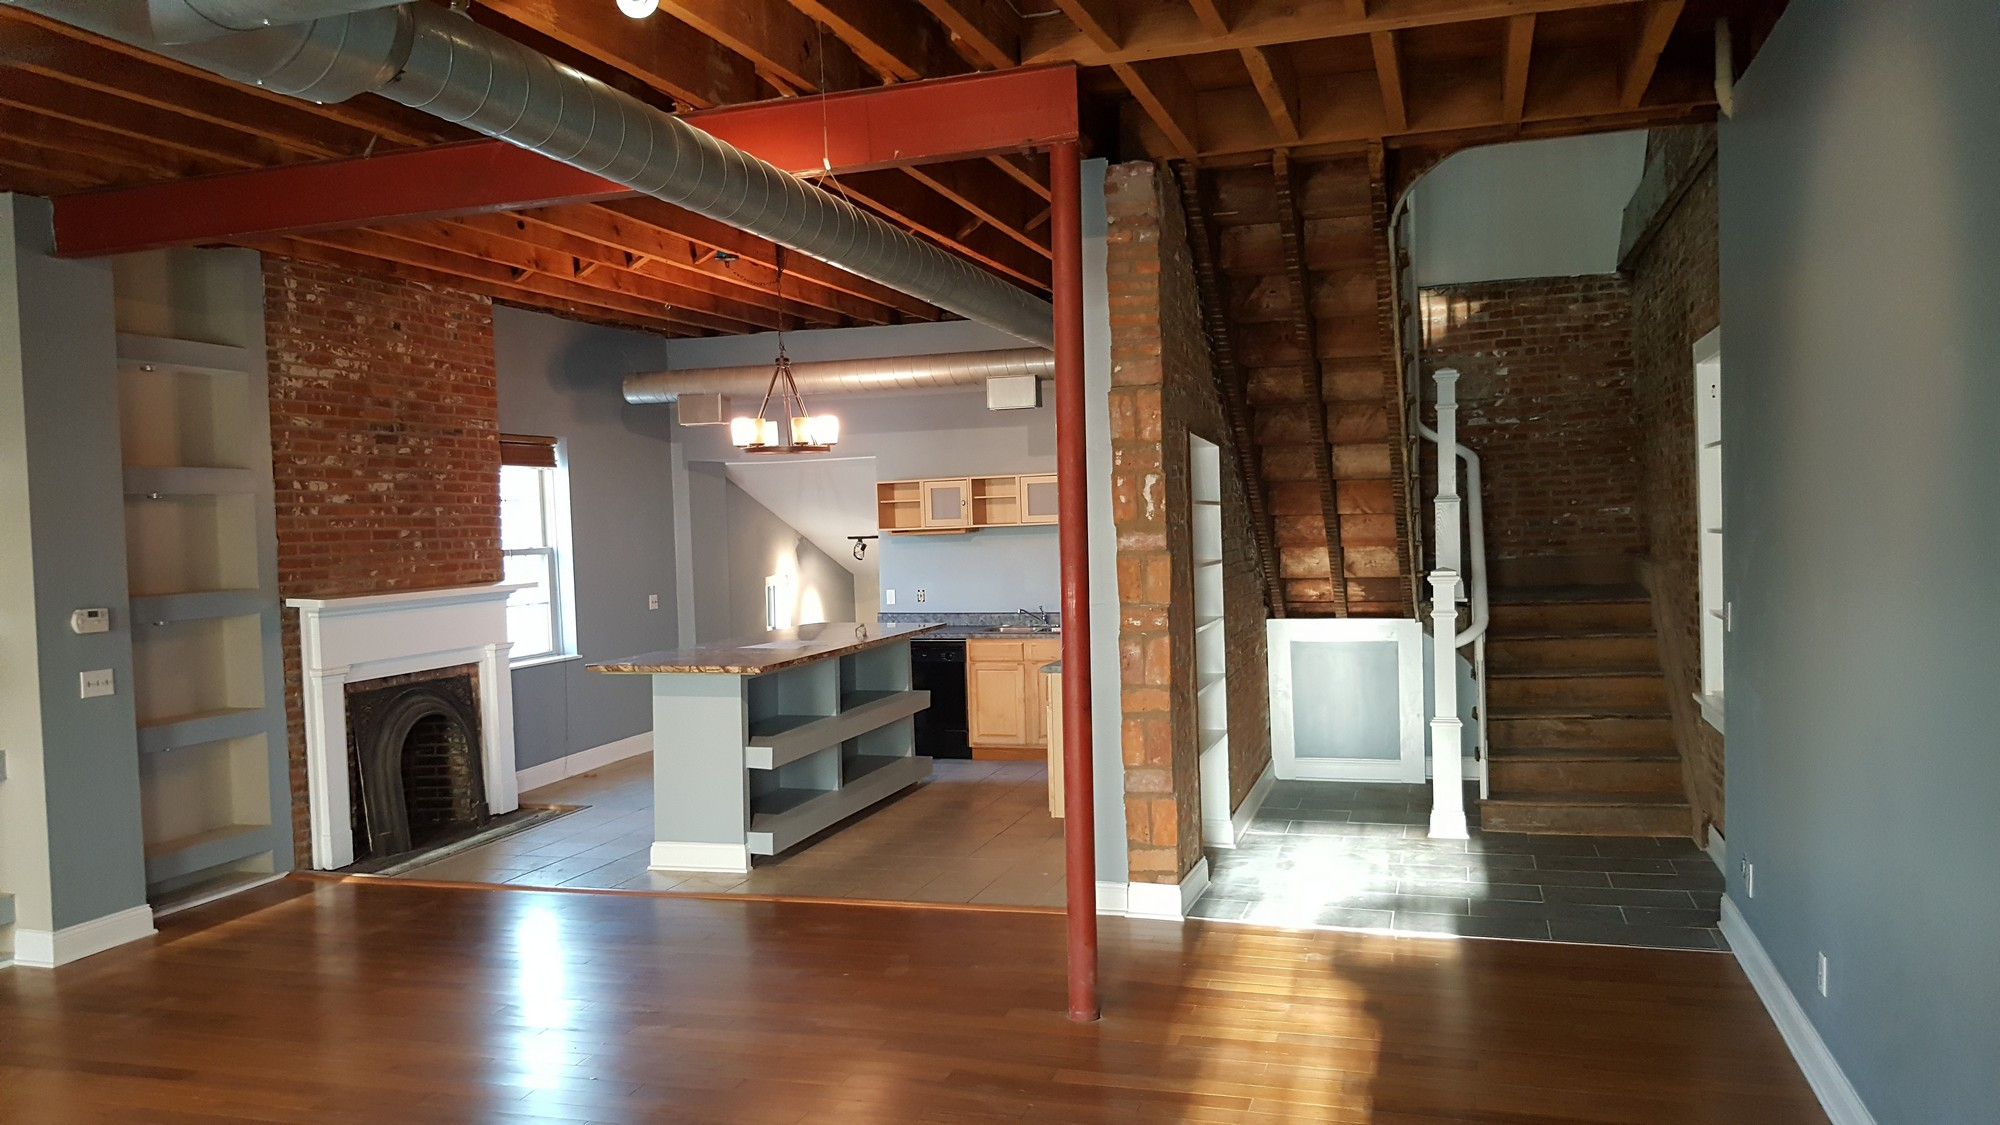 Commercial Kitchen For Rent St Louis Mo